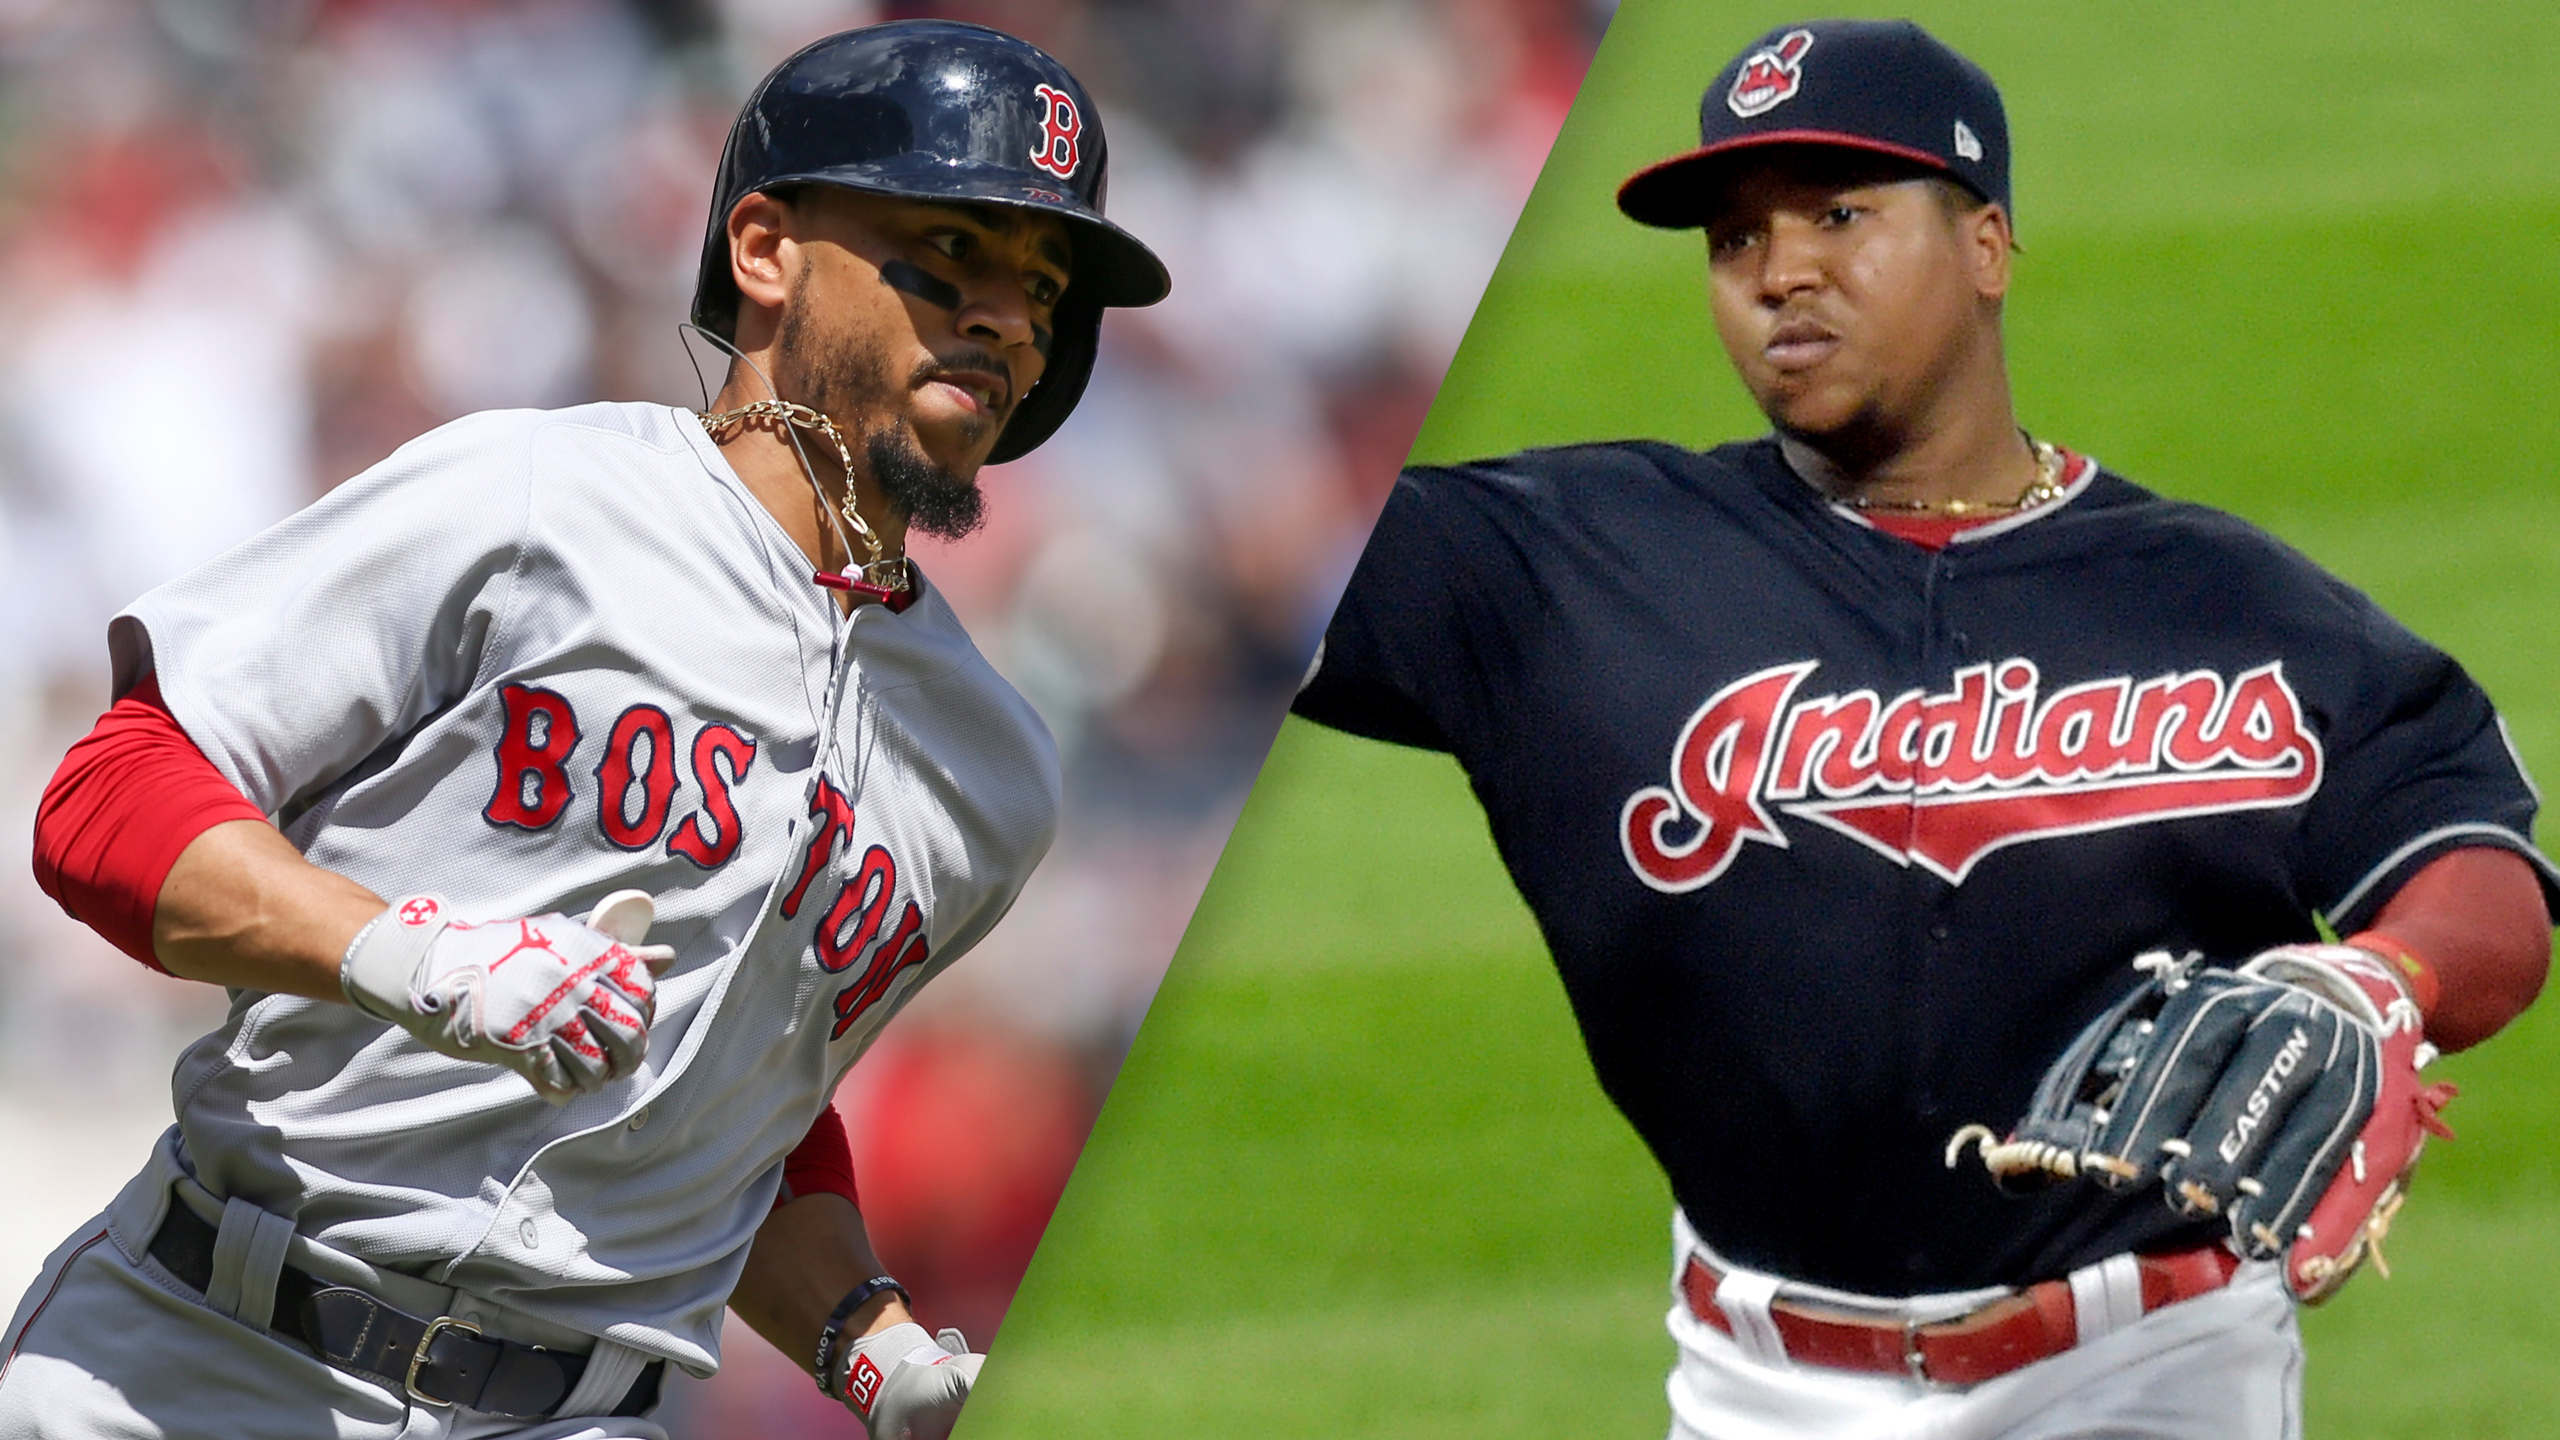 Boston Red Sox vs. Cleveland Indians (re-air)